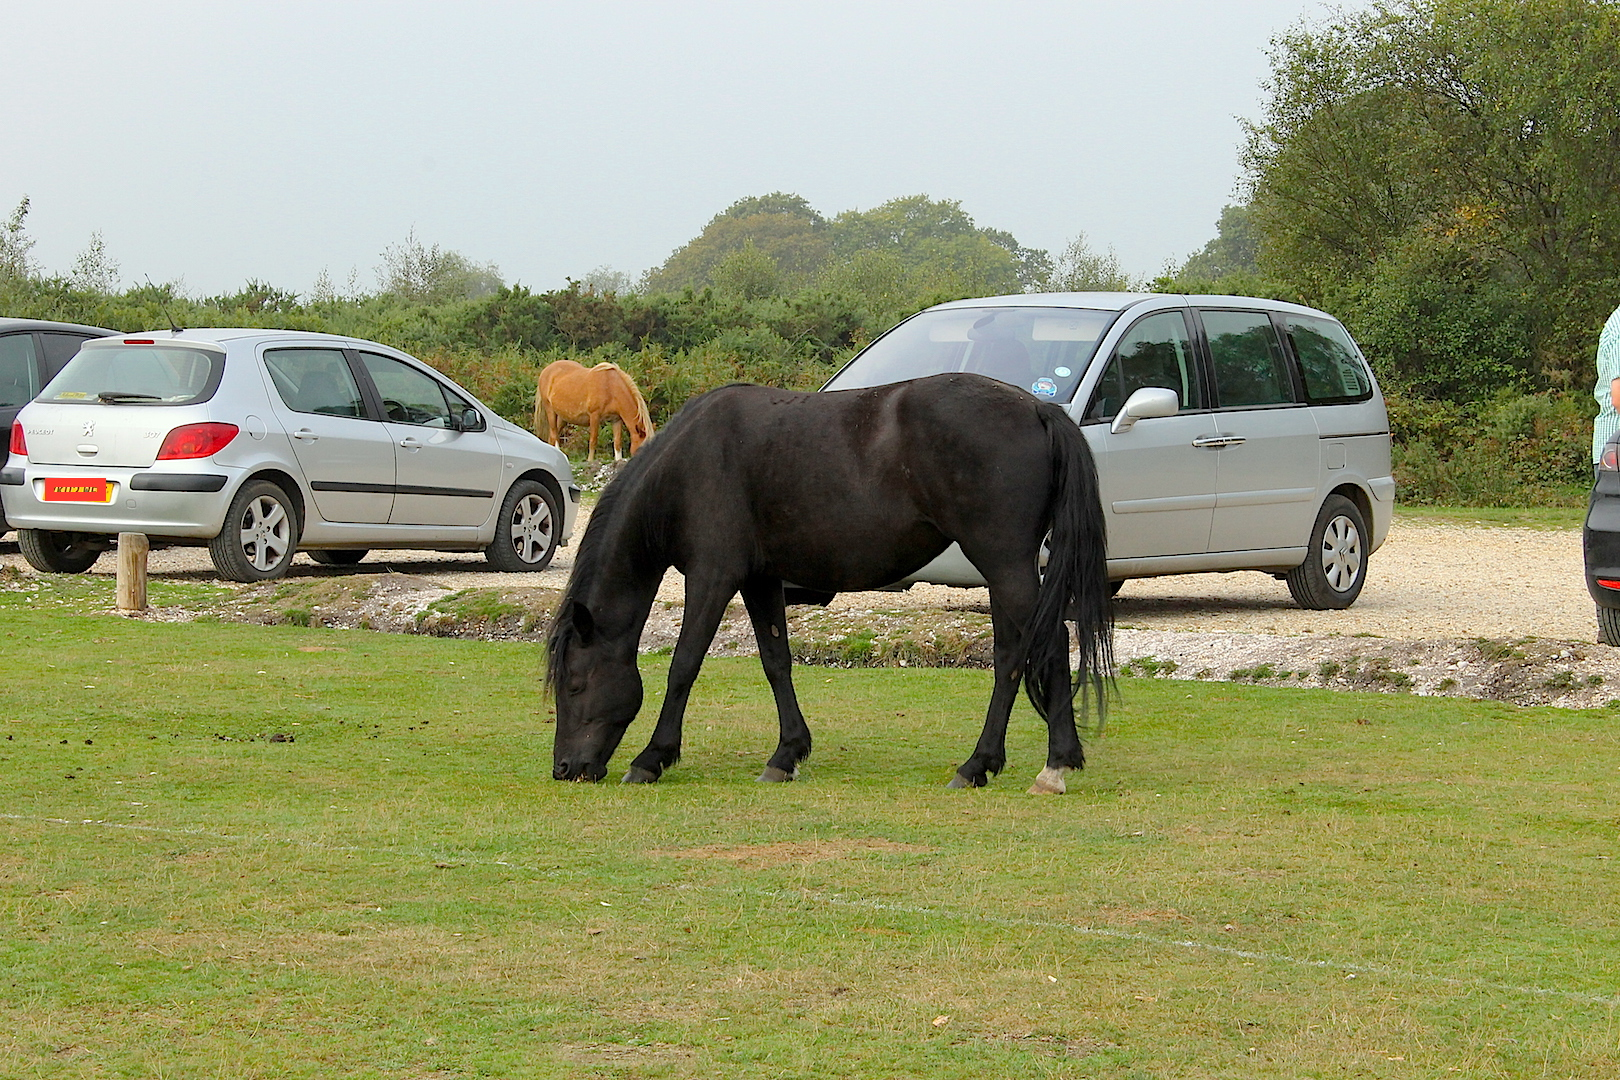 Visitors who feed New Forest ponies are teaching them not to fear humans or cars.